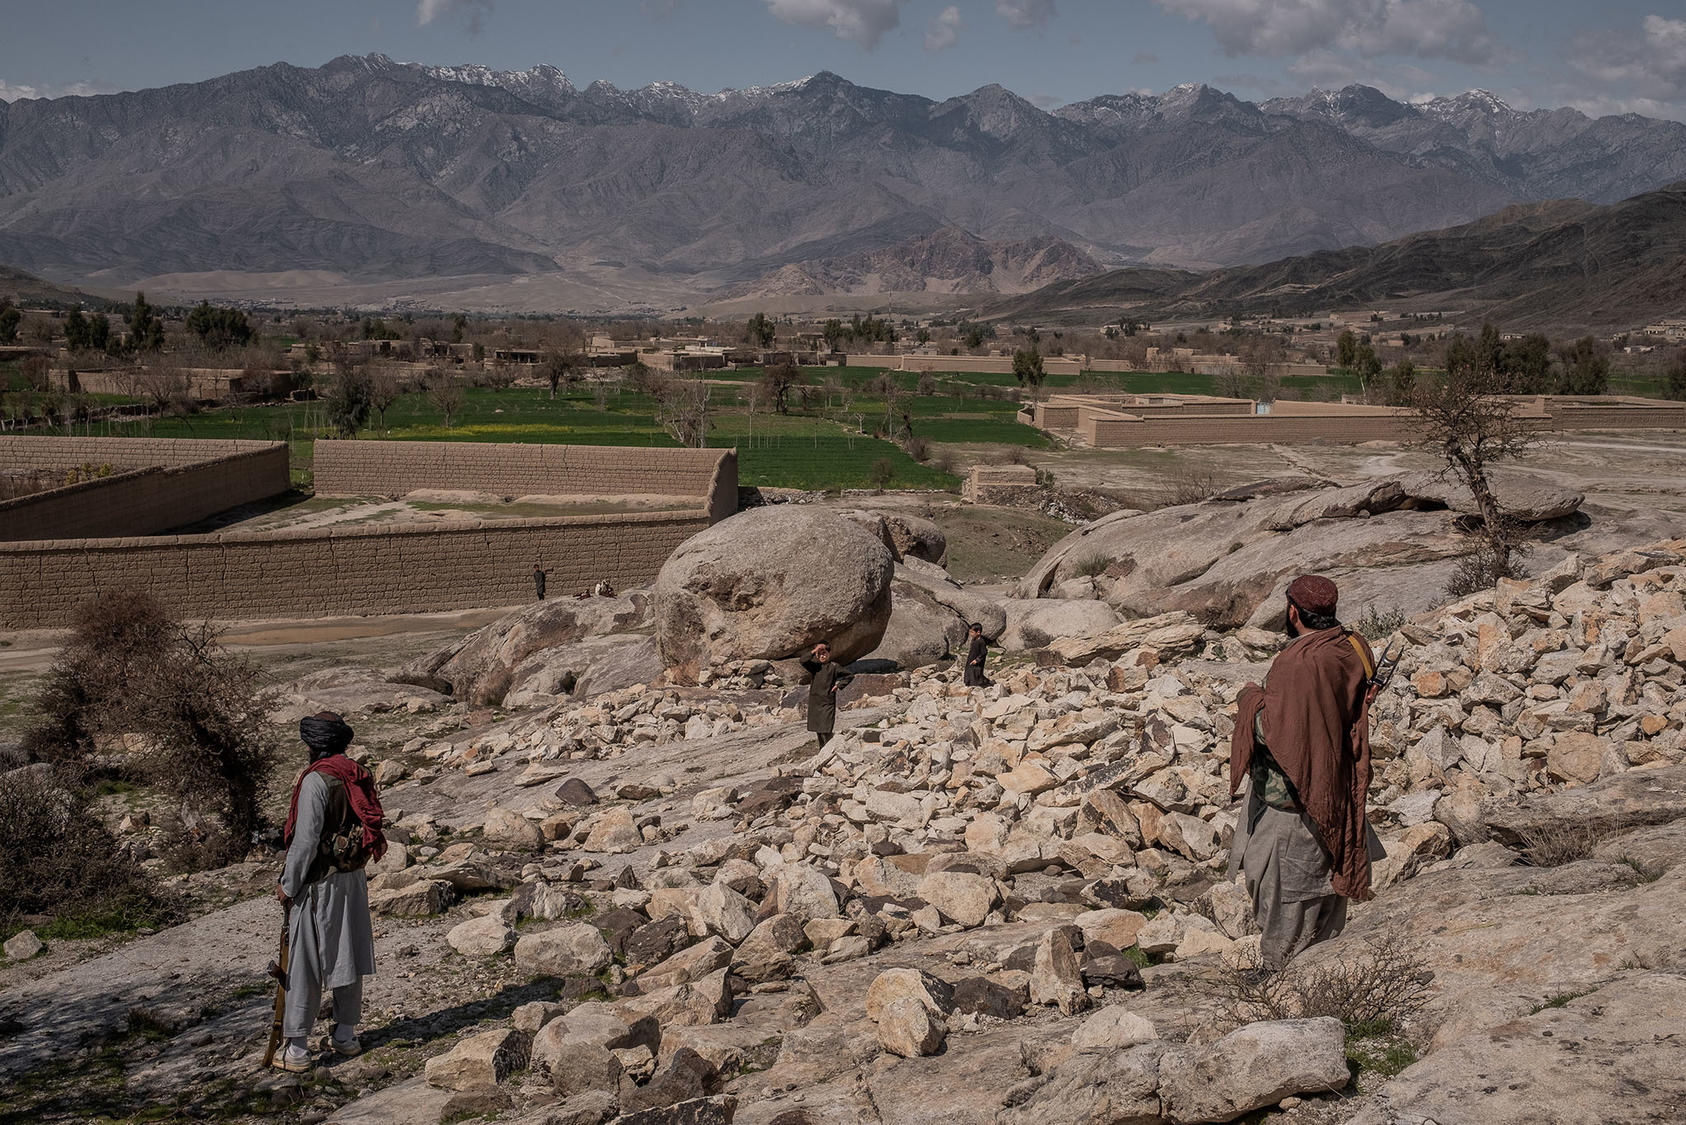 Taliban fighters in Laghman, Afghanistan, March 13, 2020. (Jim Huylebroek/The New York Times)